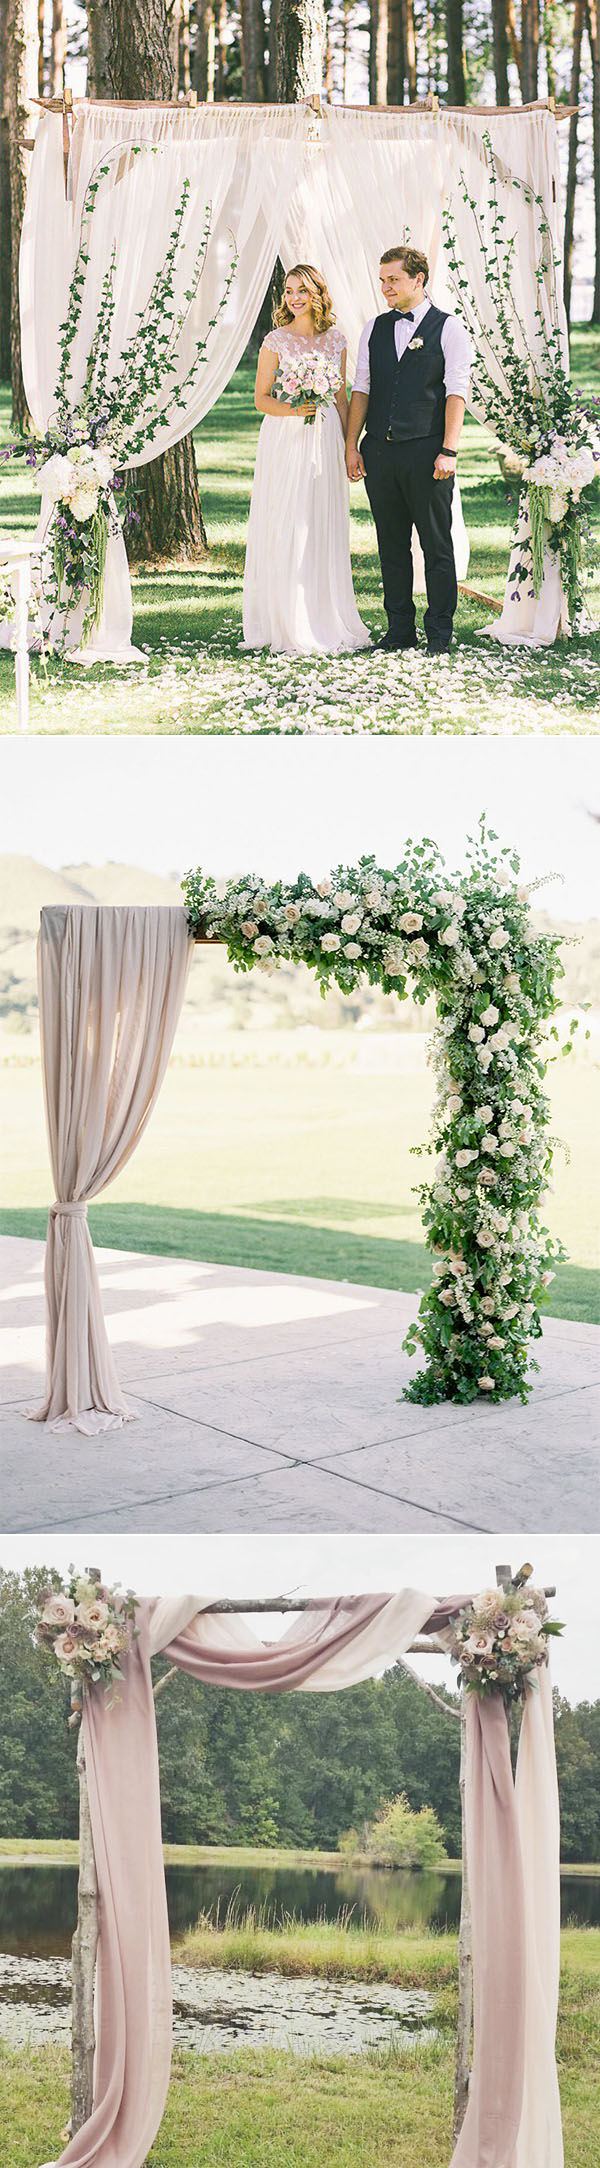 Arch Decorations For Weddings Wonderful Decorated Wedding Arches Pictures Decorations Trending